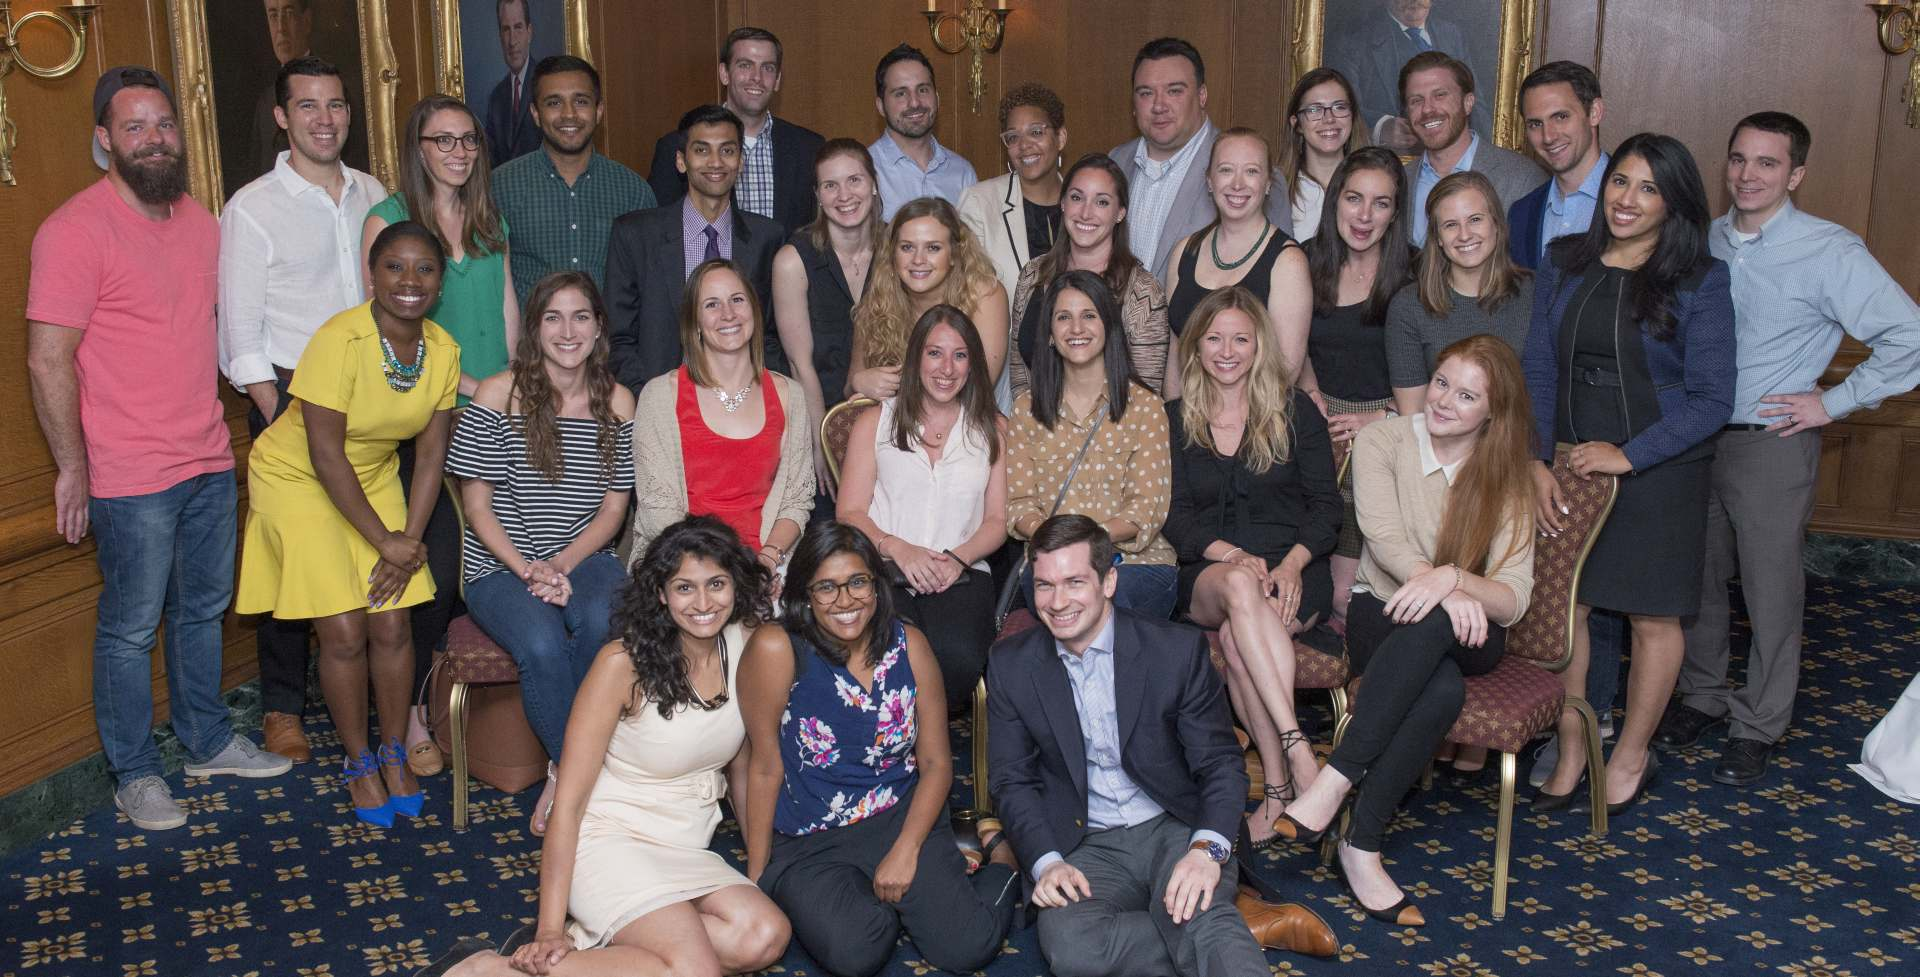 Members of the GW Law Class of 2012 during their 5th year reunion